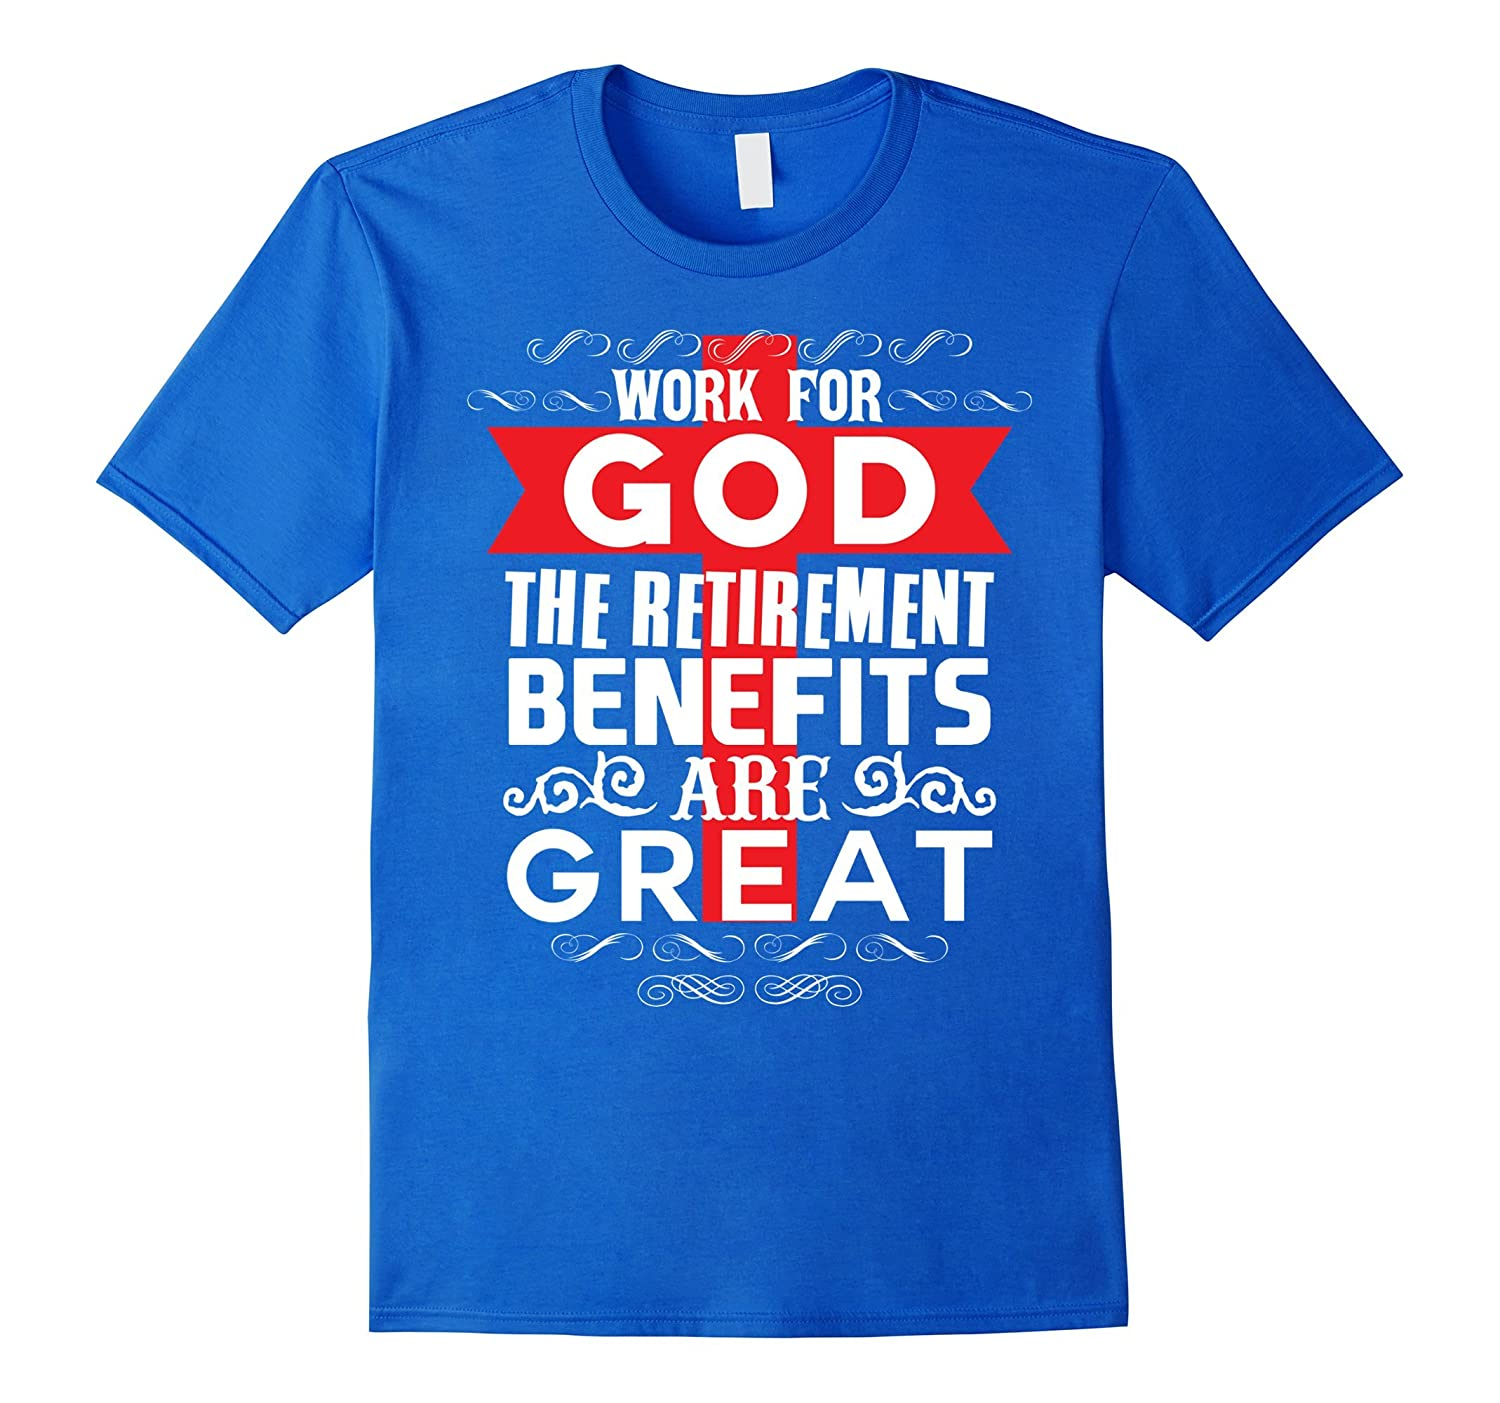 Work for god the retirement benefits are great t shirt td The great t shirt